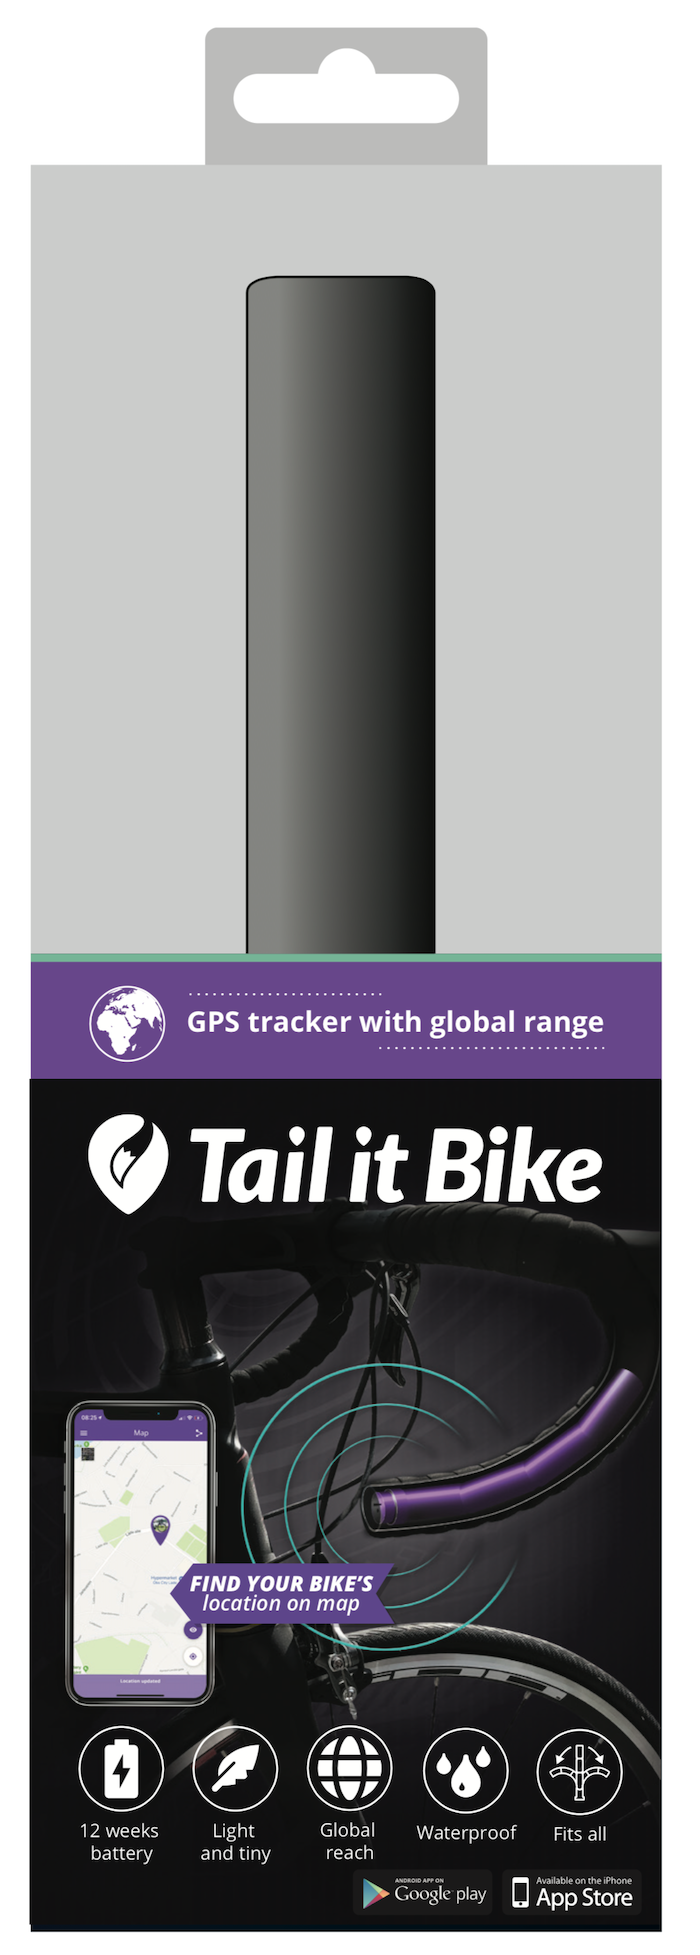 Tail it: 4 new affordable GPS trackers with global range by